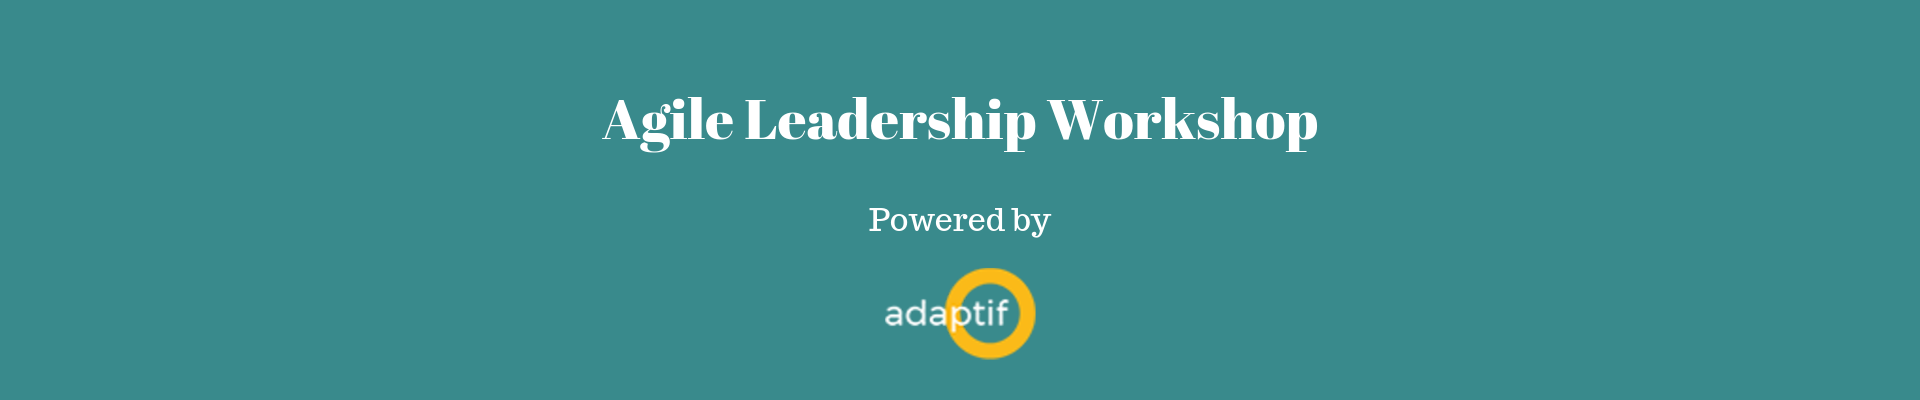 Adaptif Agile Leadership Workshop